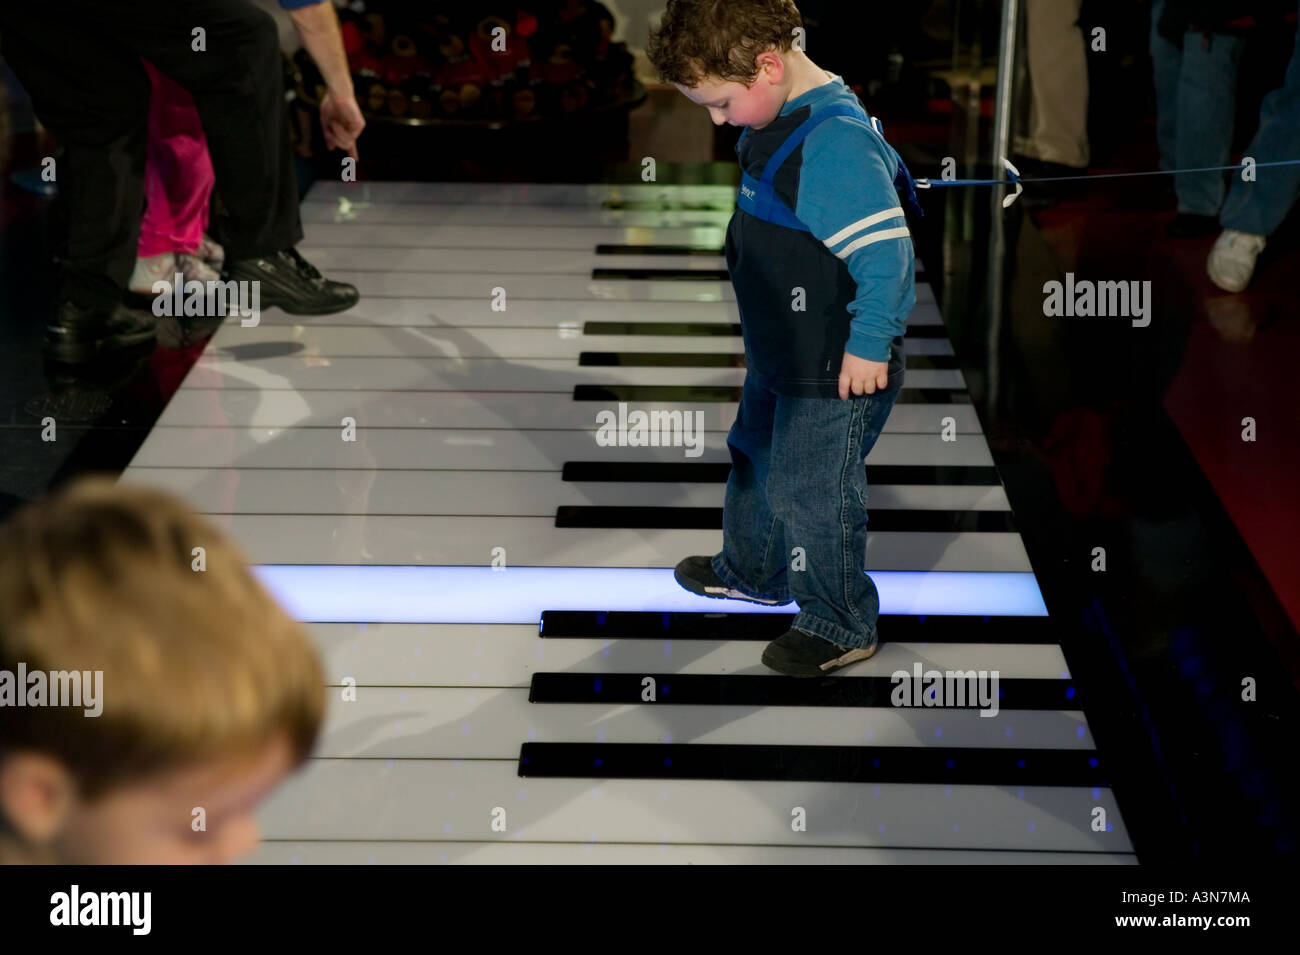 Children play on the giant piano keyboard at the fao schwarz toy children play on the giant piano keyboard at the fao schwarz toy store on 5th avenue in new york city ny usa november 2004 sciox Image collections